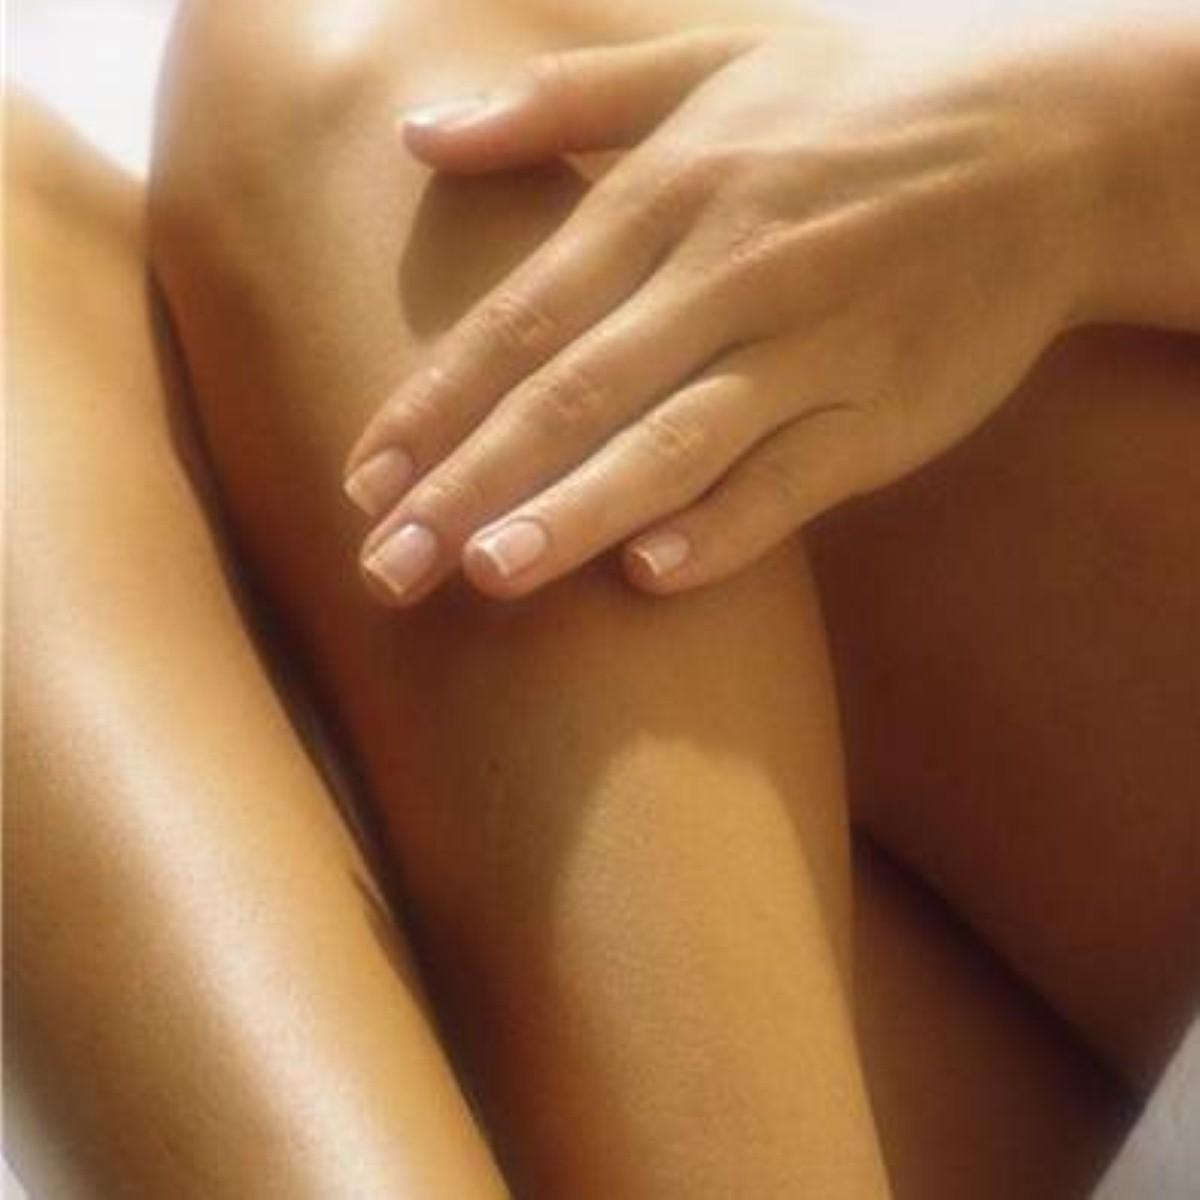 Can you treat varicose veins yourself?